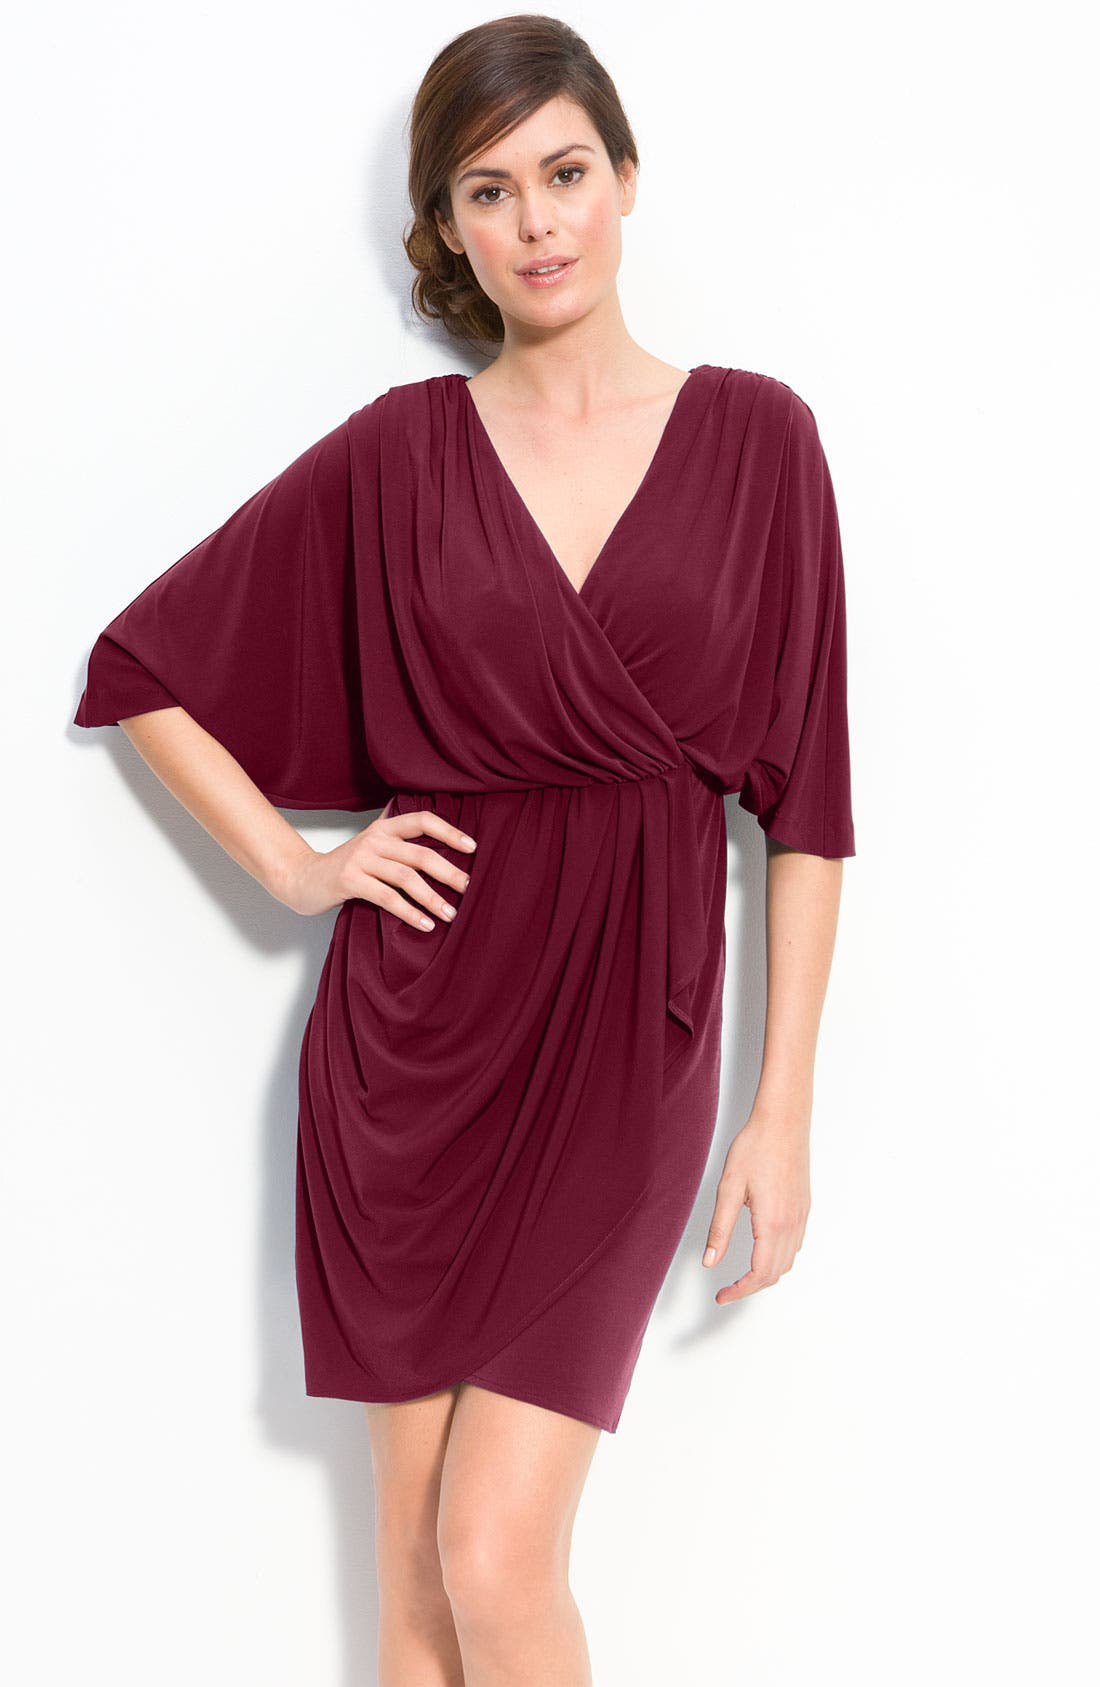 Alternate Image 1 Selected - Suzi Chin for Maggy Boutique Dolman Jersey Dress